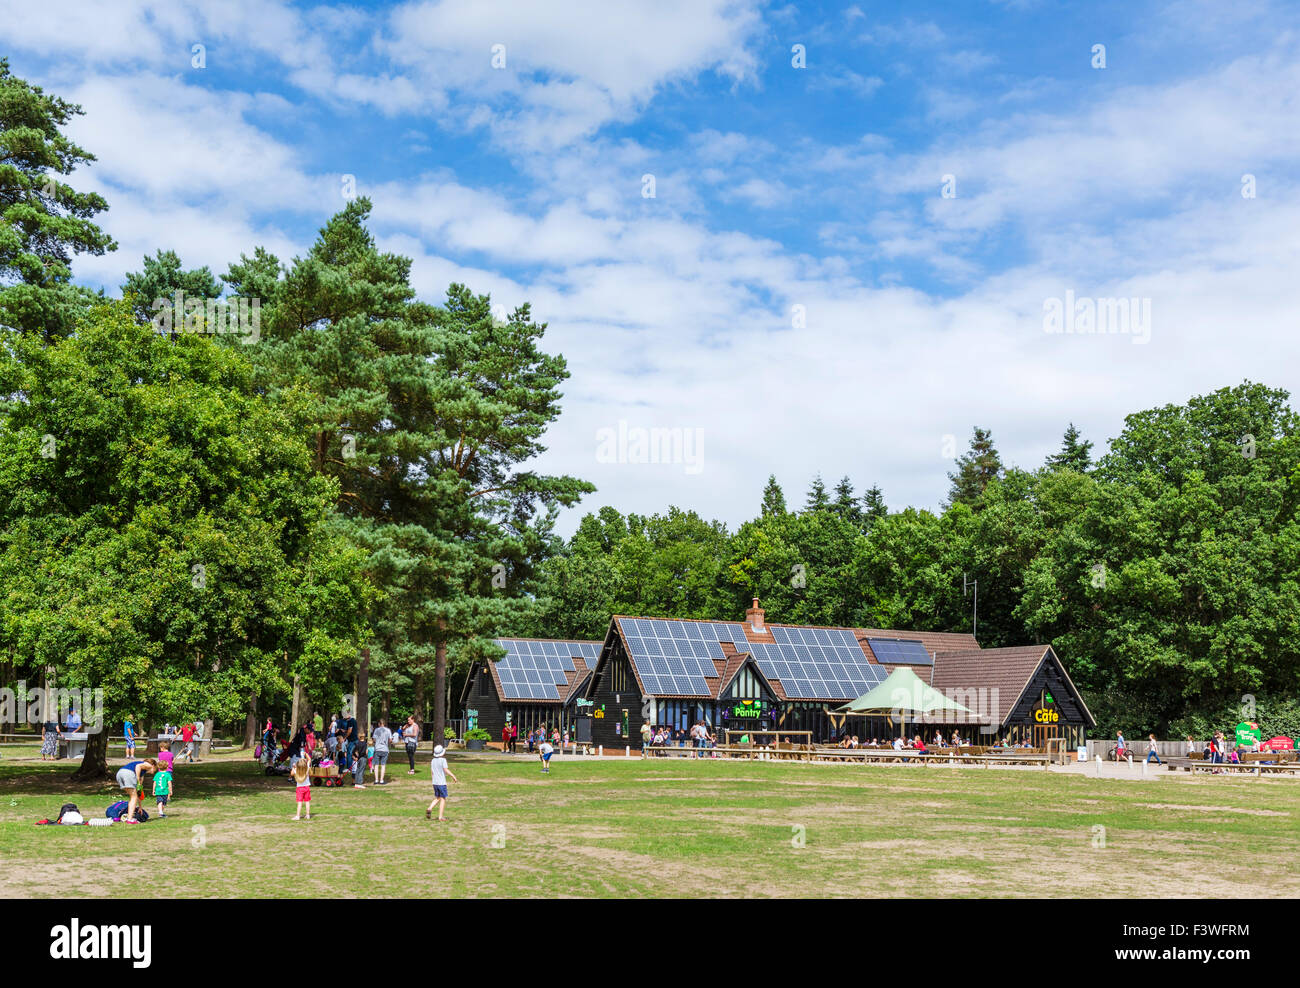 High Lodge Visitors Centre in Thetford Forest, Norfolk, England, UK - Stock Image